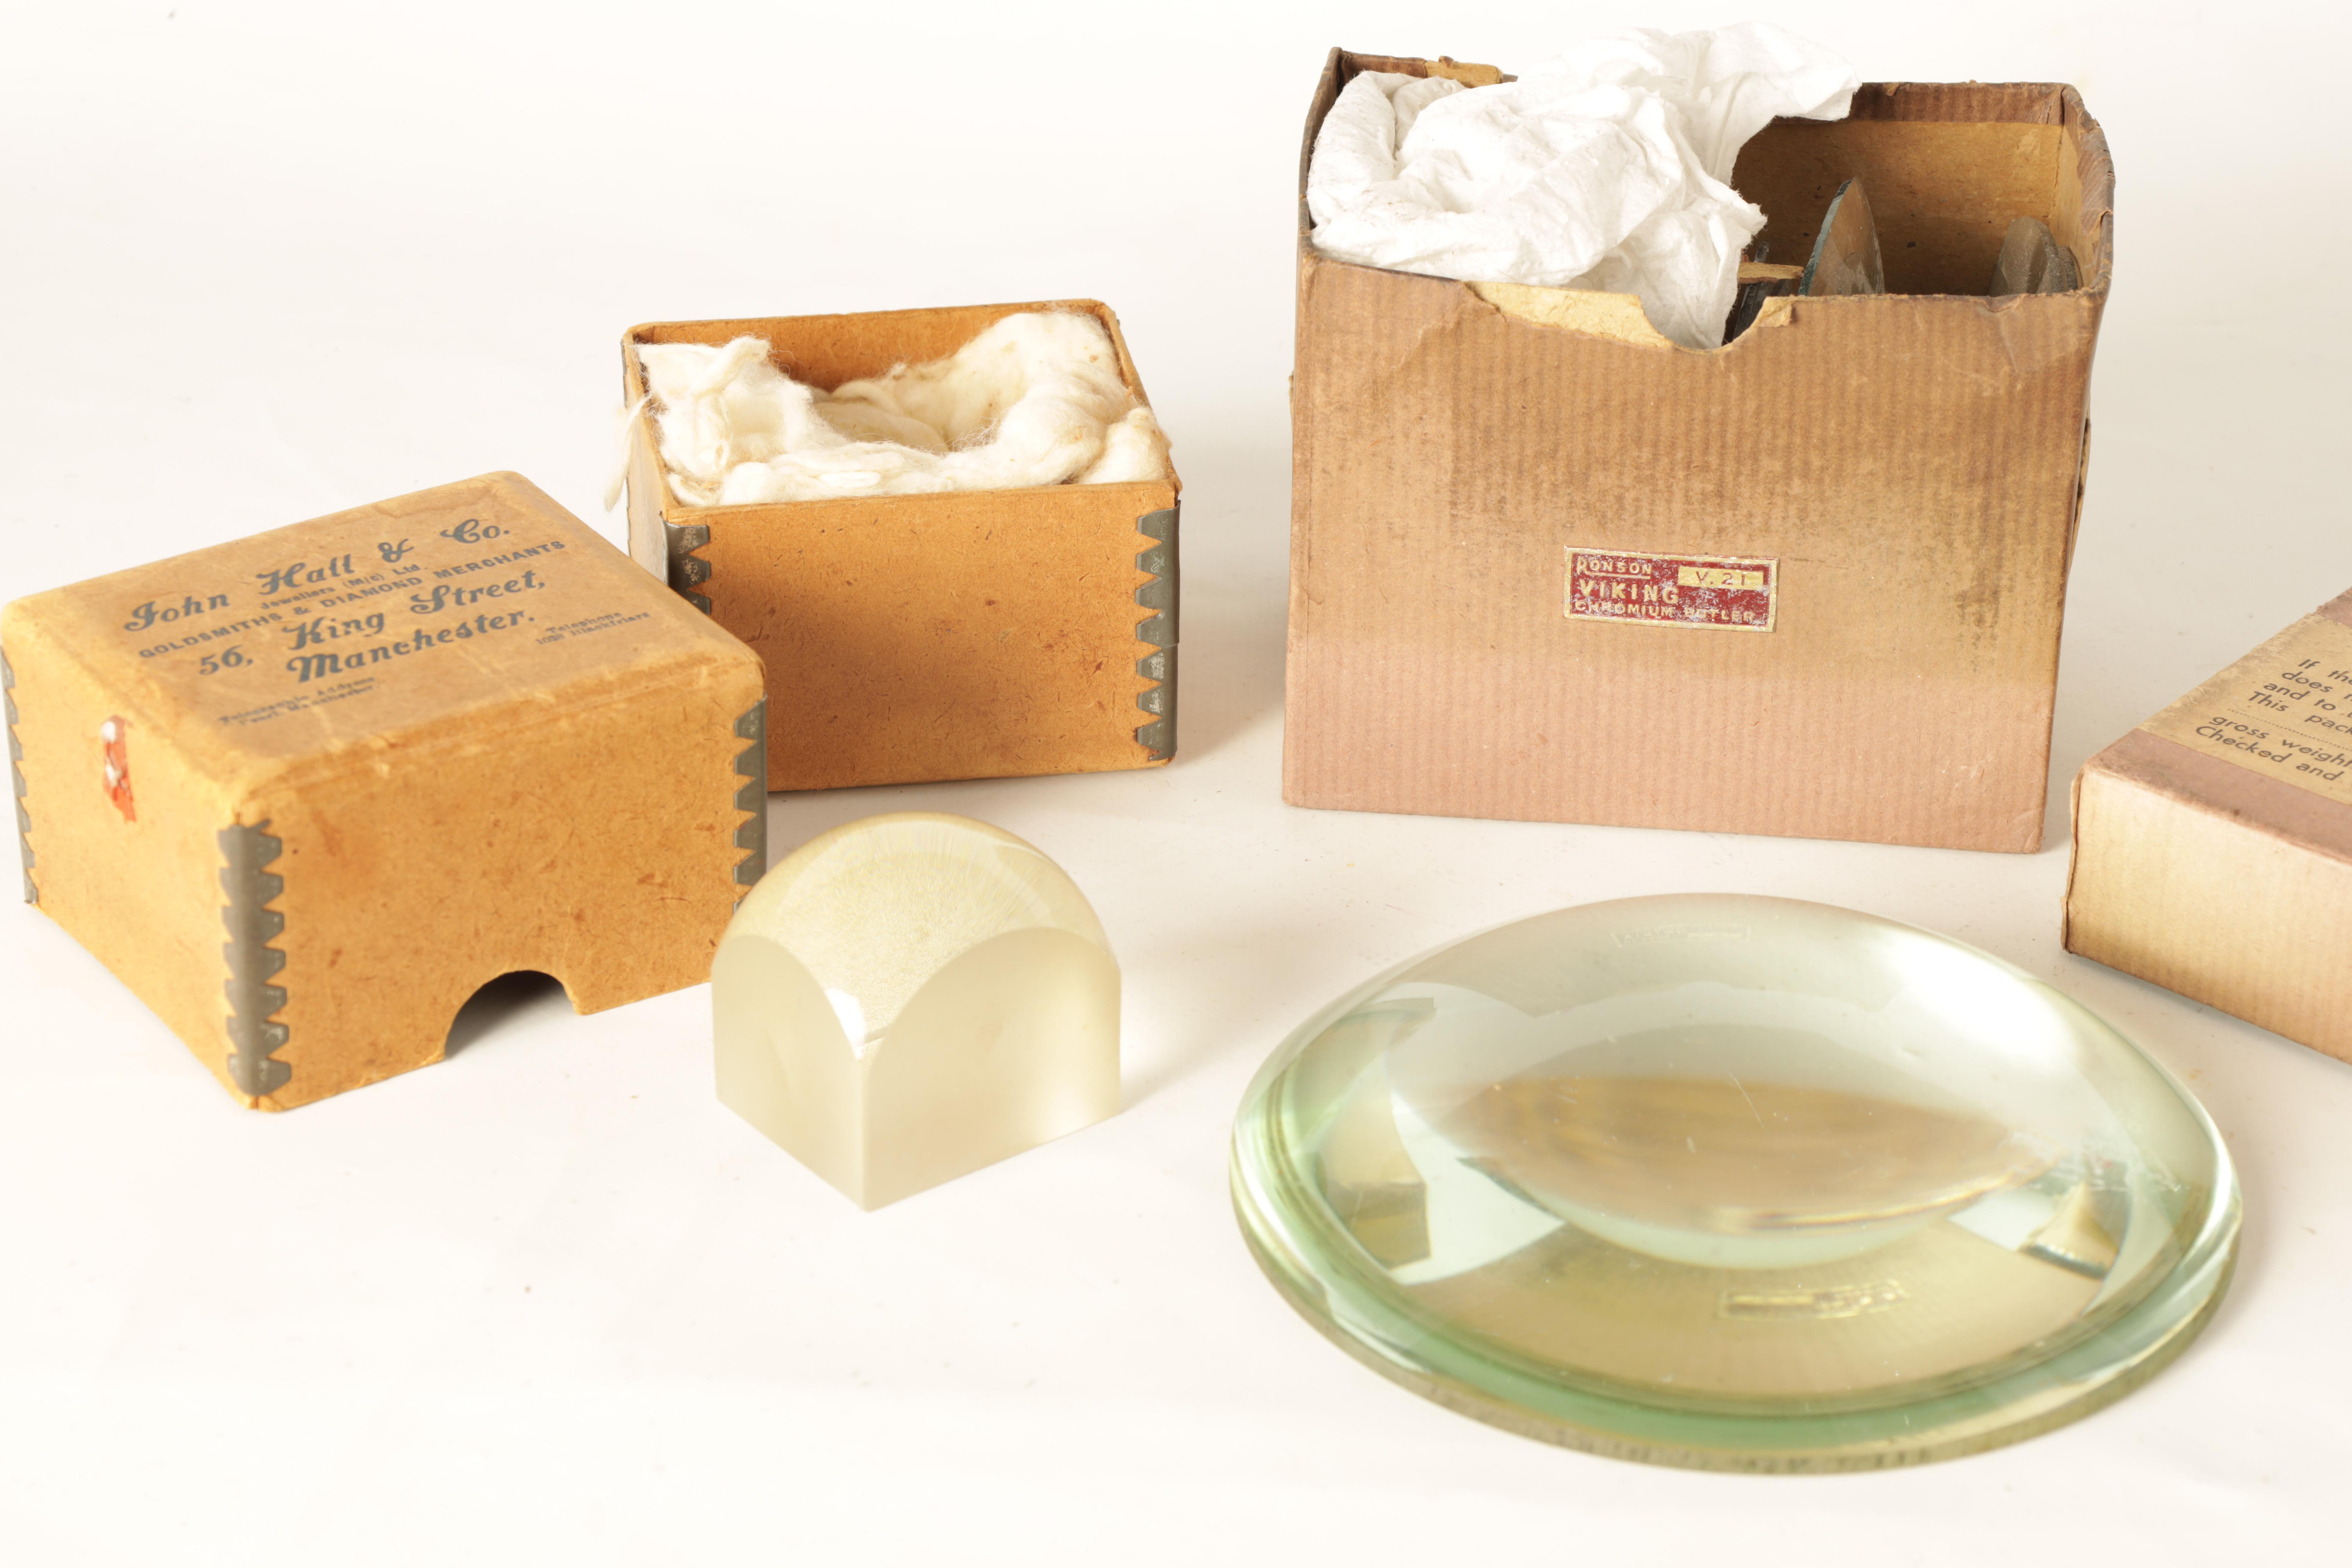 TWO MAGNIFYING LENSES including a large circular and square examples TOGETHER WITH A BOX OF CLOCK - Image 11 of 11